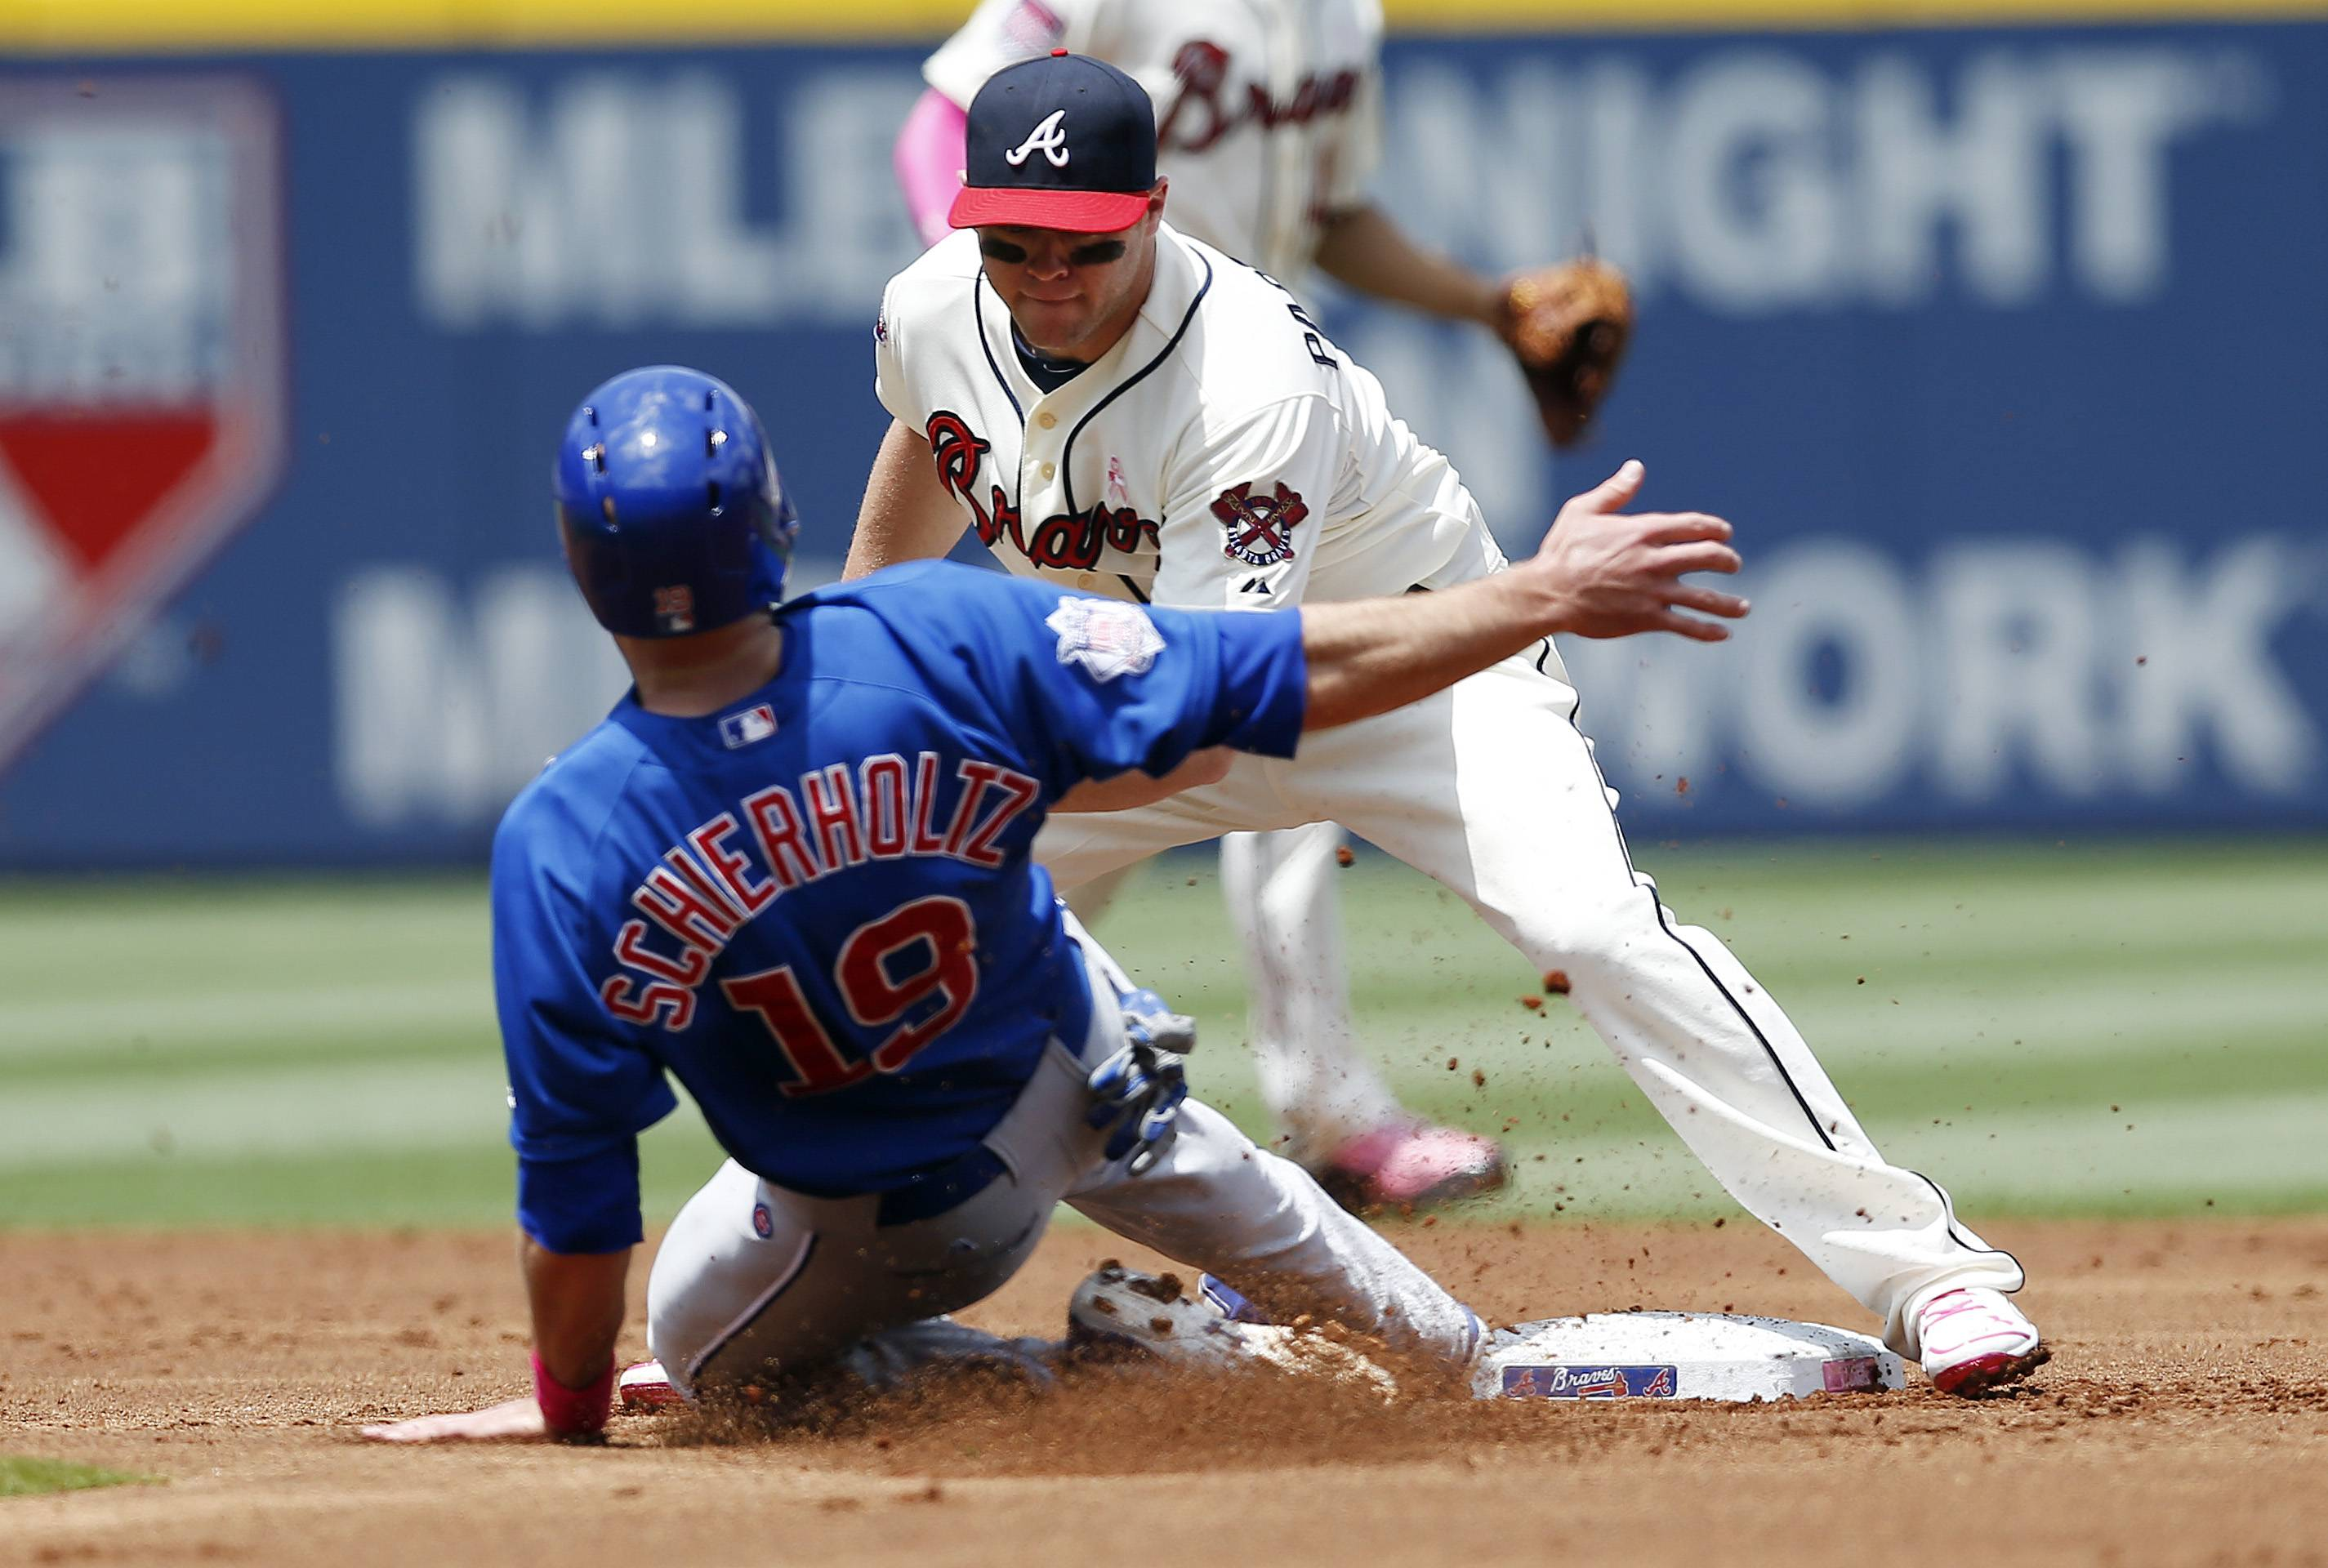 The Cubs' Nate Schierholtz (19) is tagged out by Atlanta Braves second baseman Tyler Pastornicky while trying to steal second base in the second inning of a baseball game on Sunday, May 11, 2014, in Atlanta.